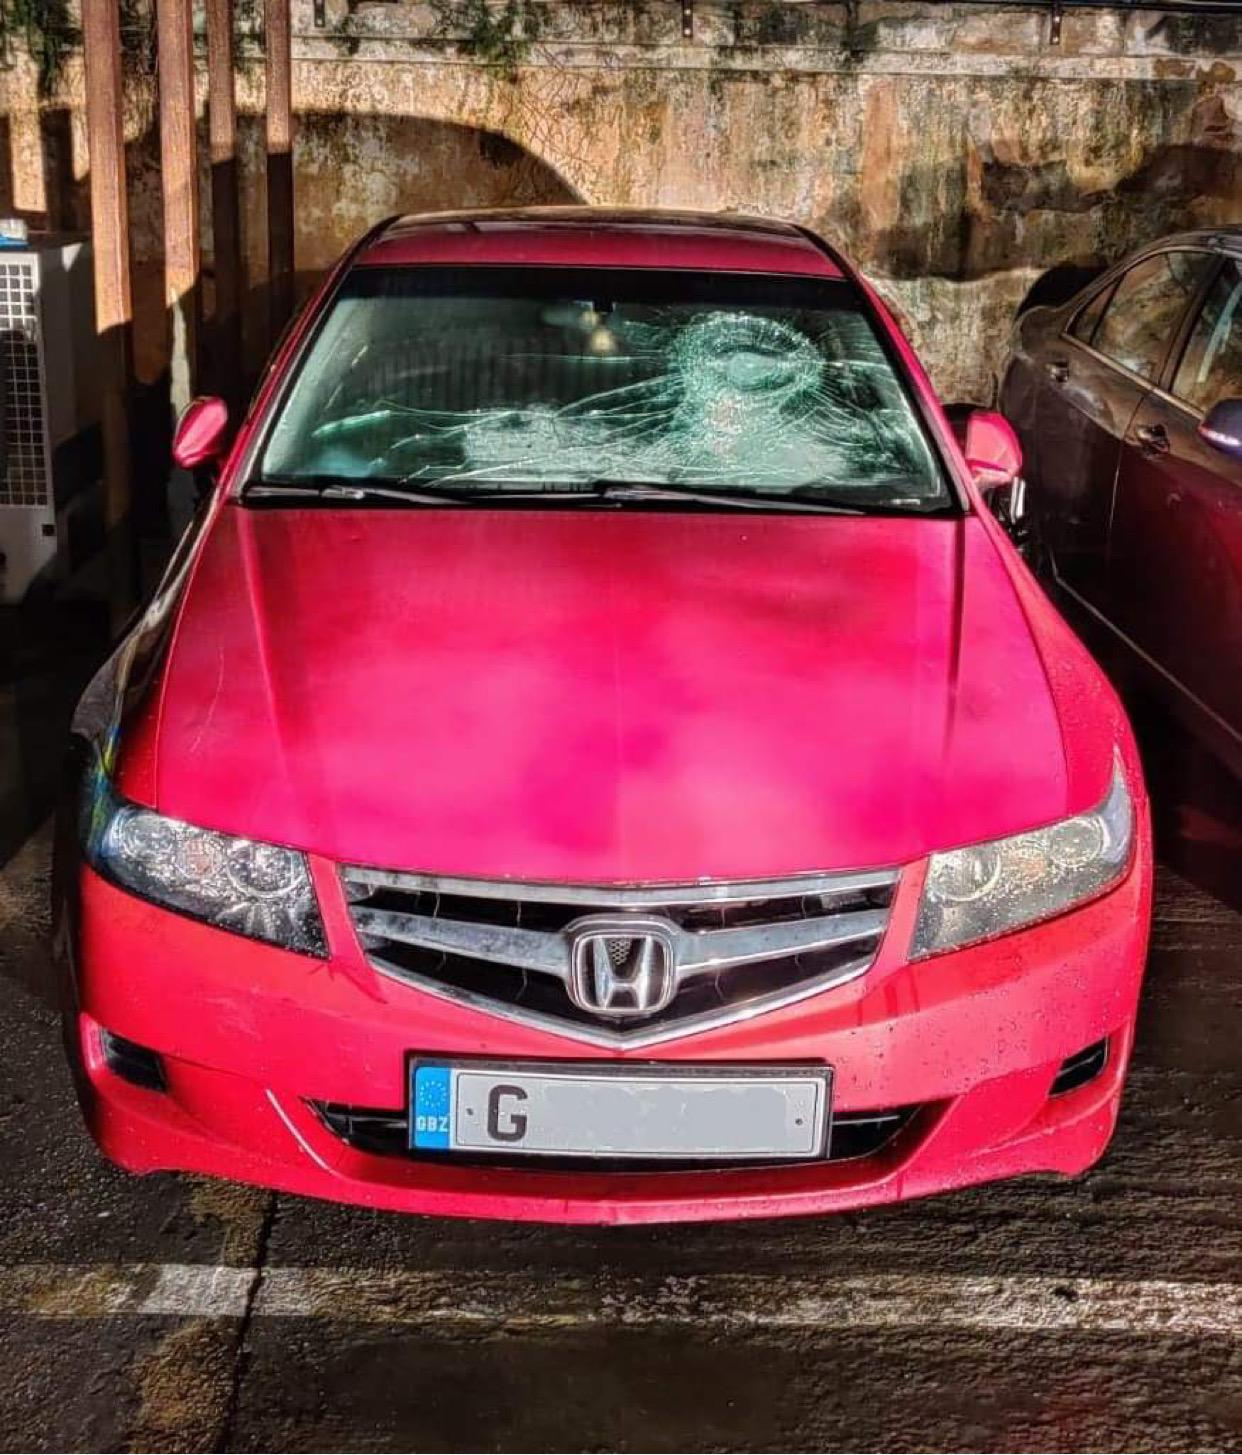 The Honda Accord motor car with a damaged windscreen following the collision with an RGP patrol vehicle.